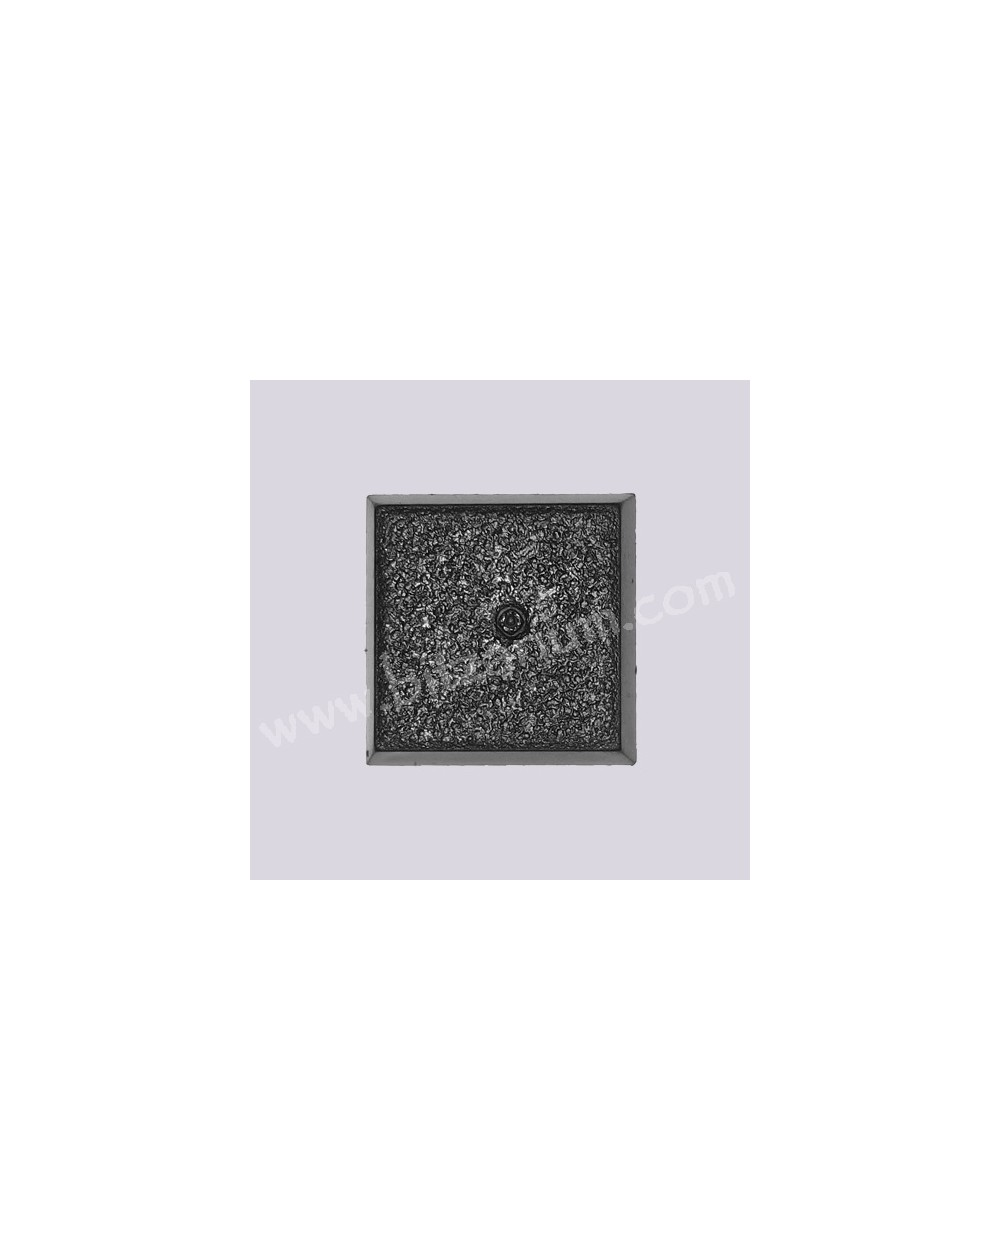 25mm/0,98in solid square Base 05